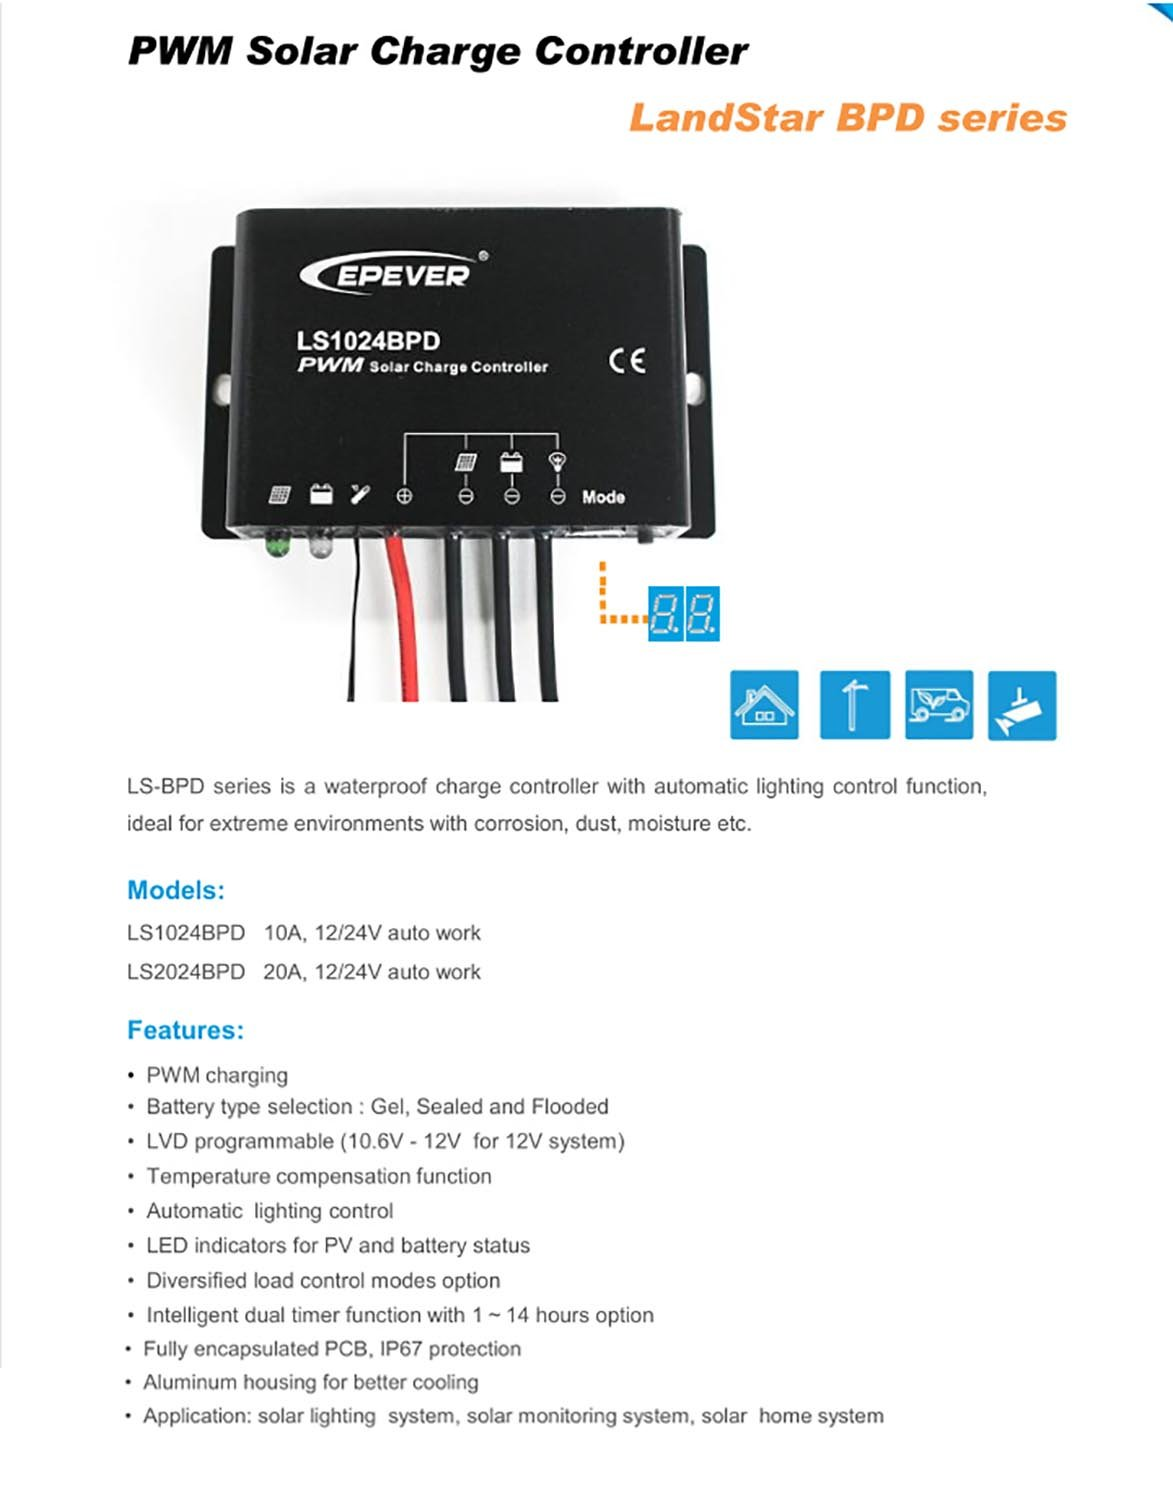 Solar Charge Controller Waterproof Ip67 Pwm Ls1024bpd Mode 12v 24v 6a Small Control Ce Panel 10a Auto Work With Automatic Lighting Funcation